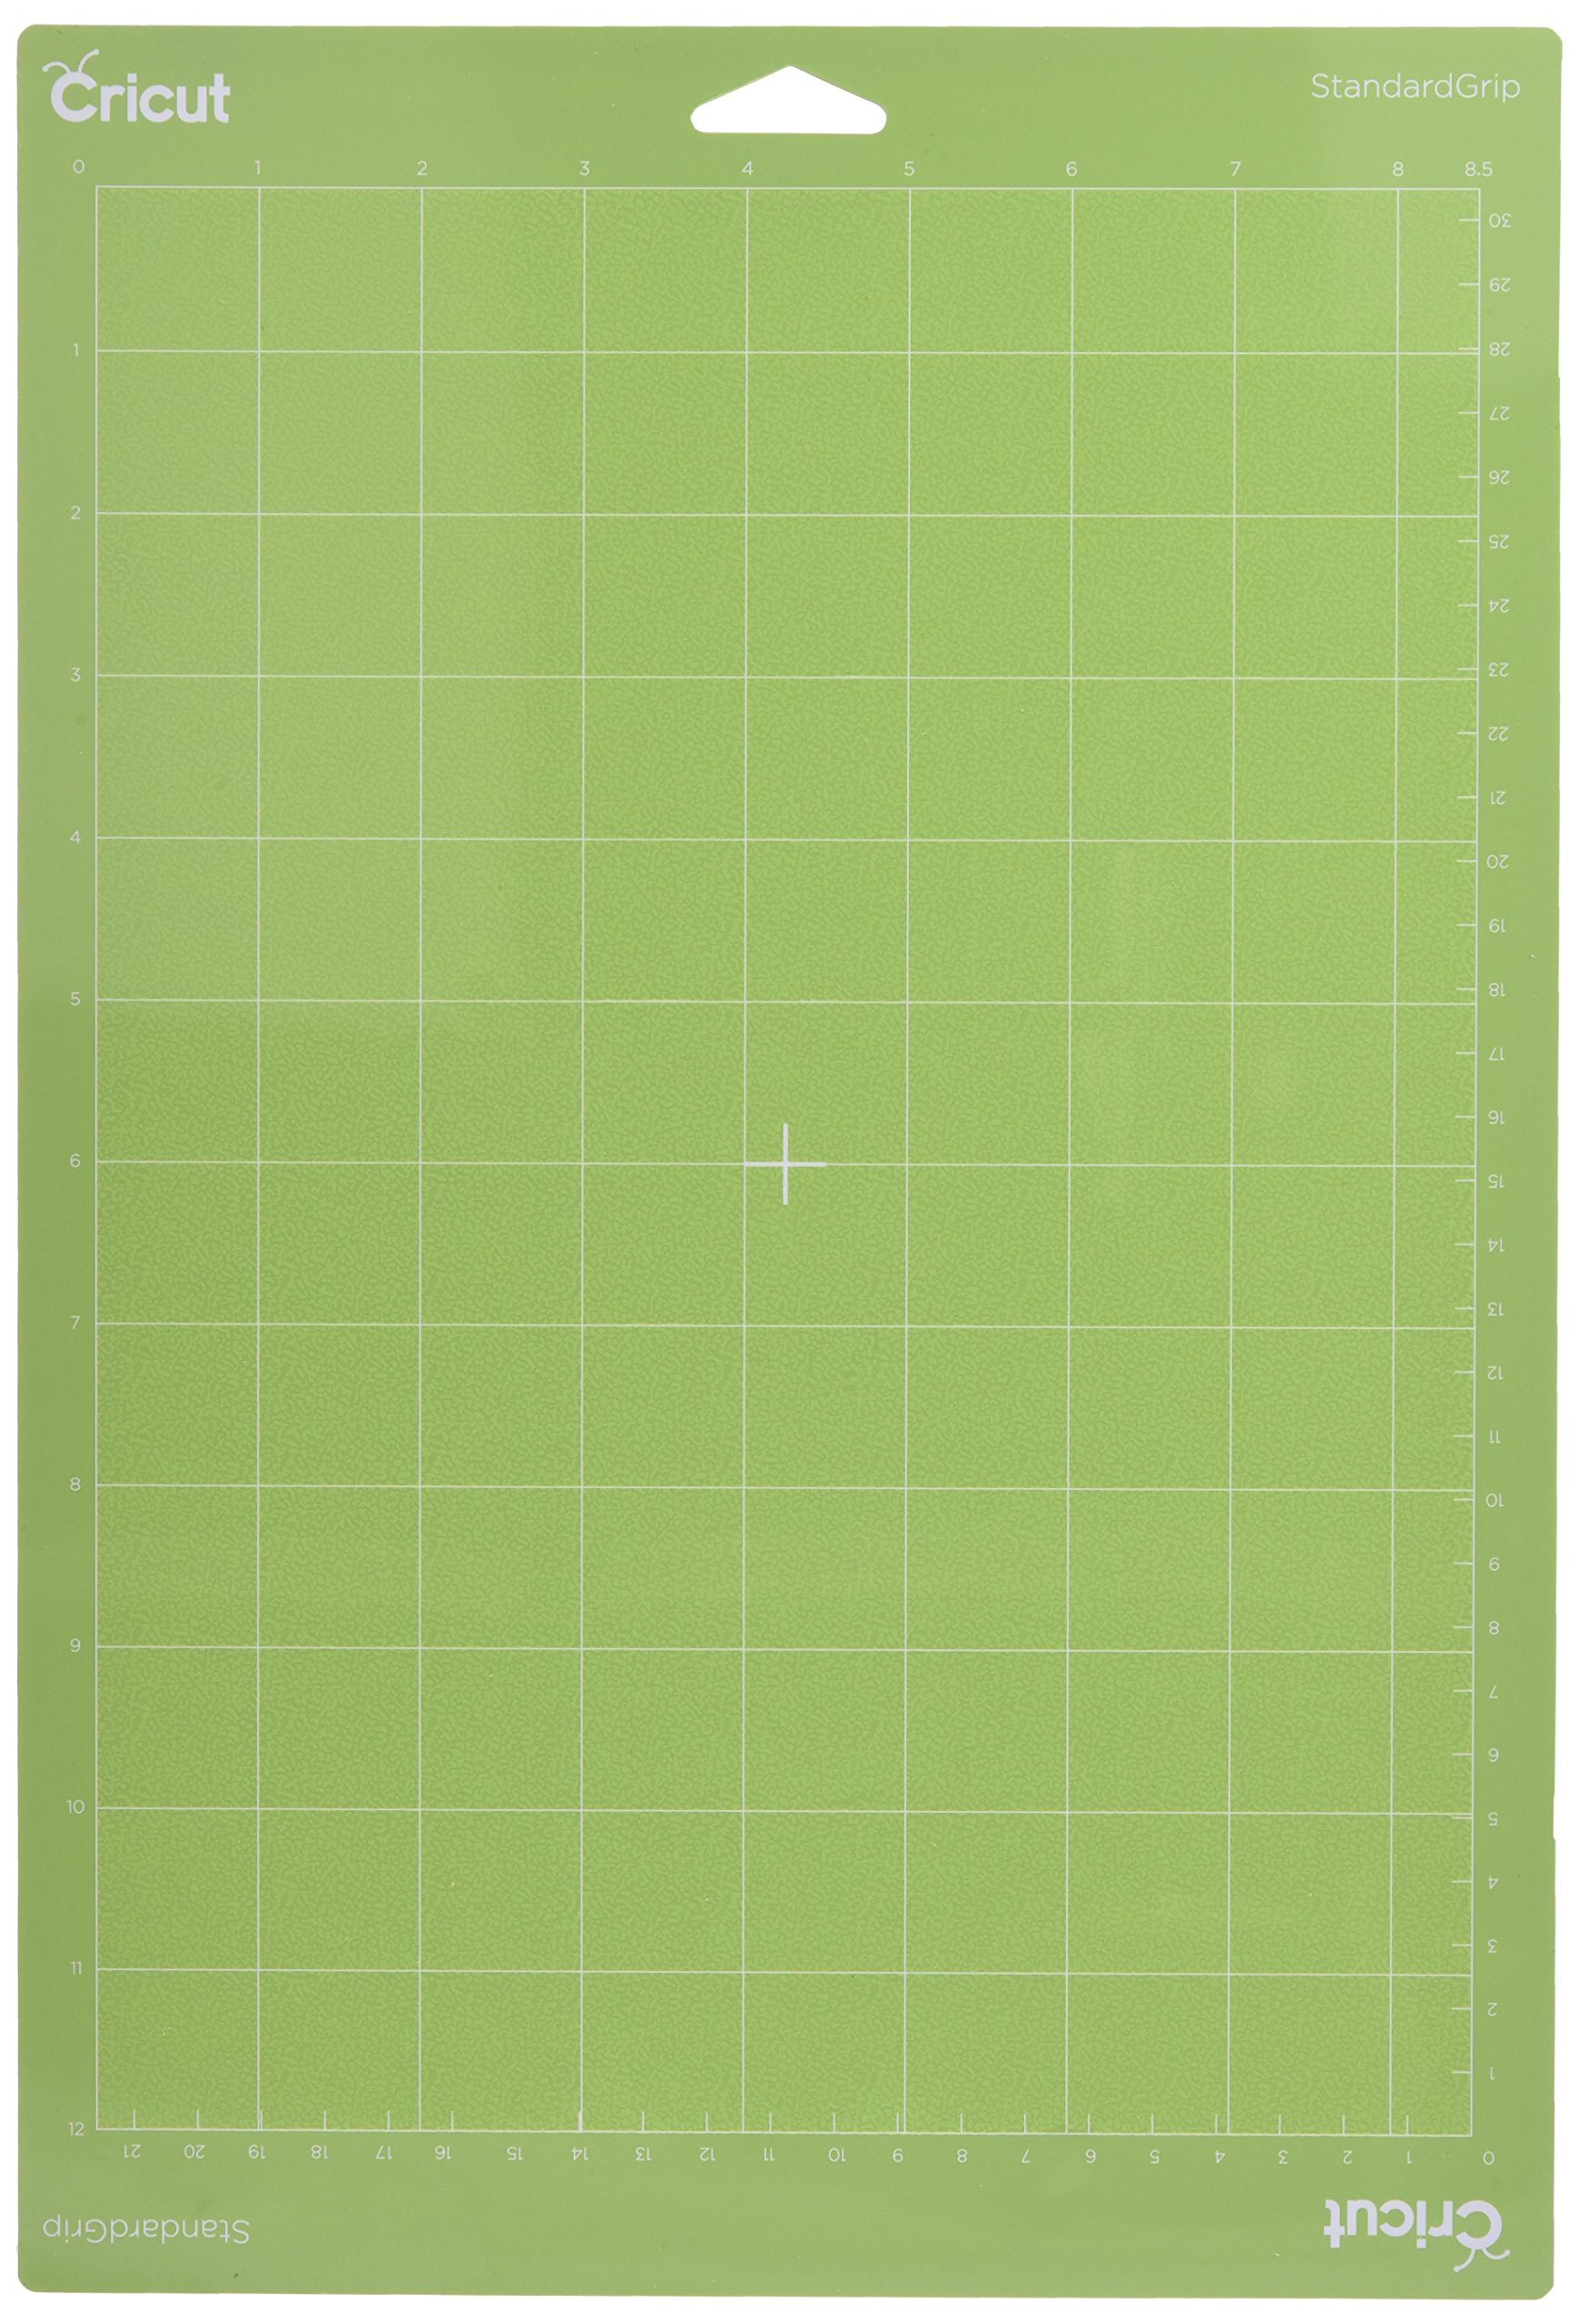 Cricut 2001973 StandardGrip Adhesive Cutting Mat for Crafting, 8.5 by 12-Inch